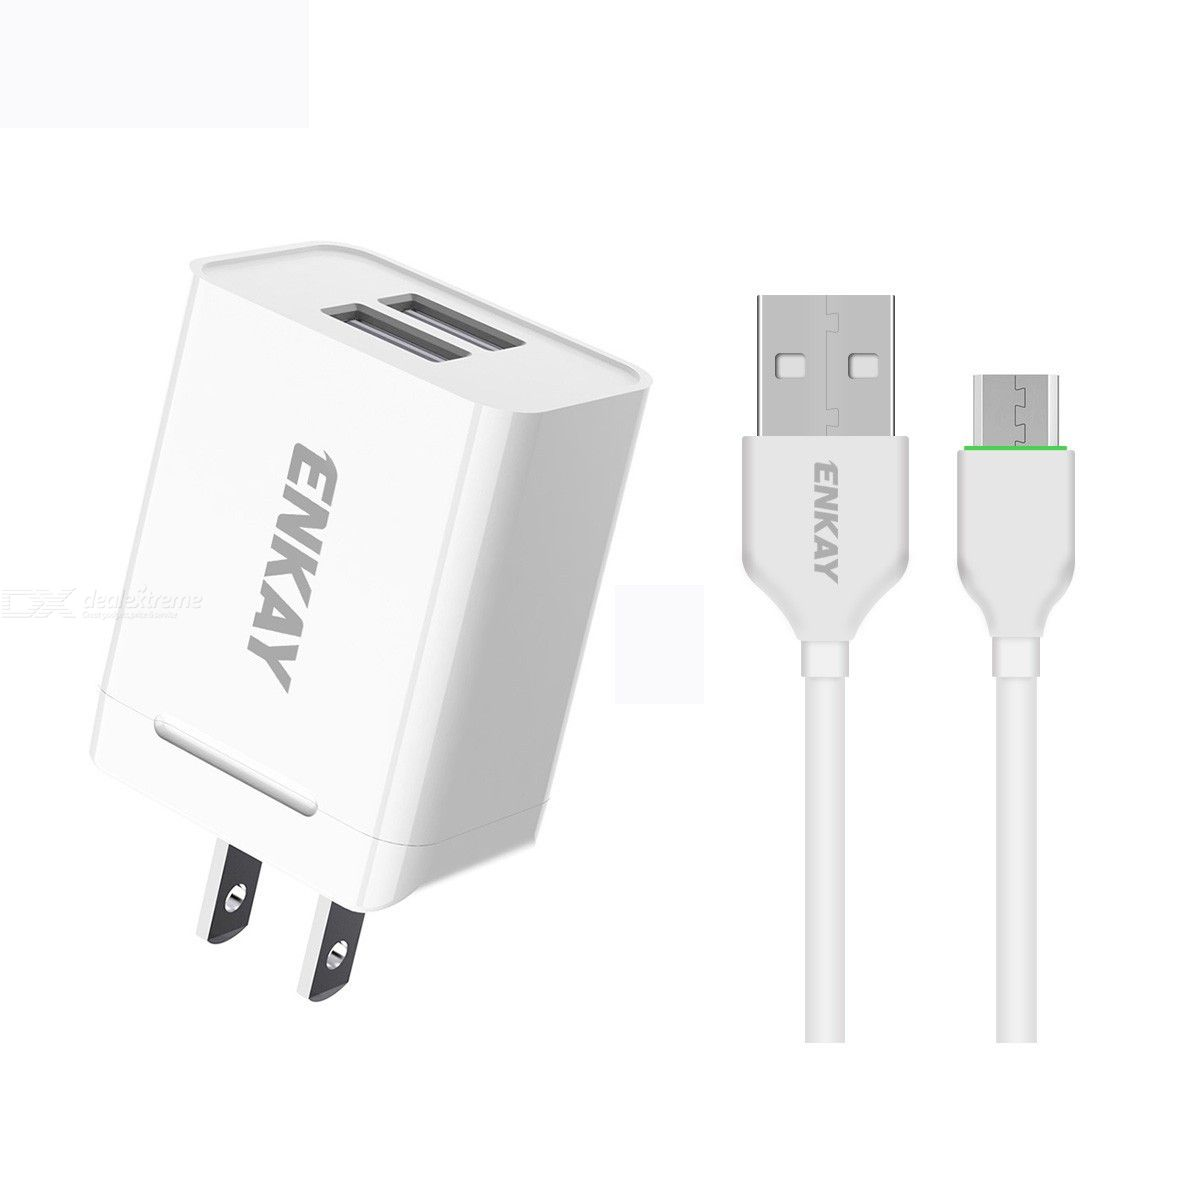 Enkay hat-prince u008-1 10.5w 2.1a dual usb charging us plug travel power adapter with 2.1a 1m type-c cable